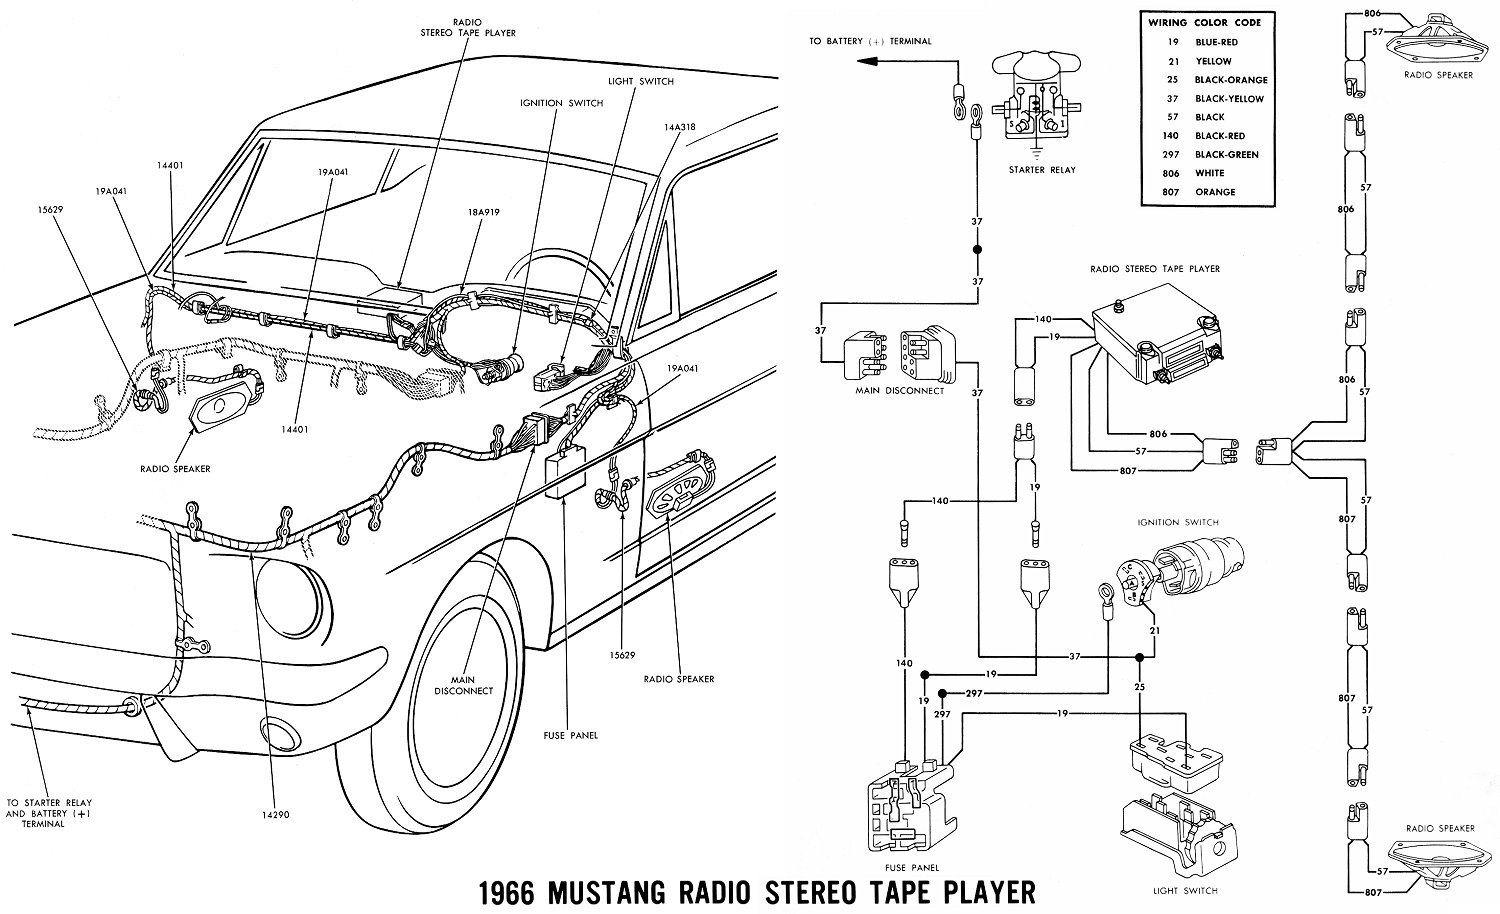 66stereo 1966 mustang wiring diagrams average joe restoration system wiring diagram at bayanpartner.co